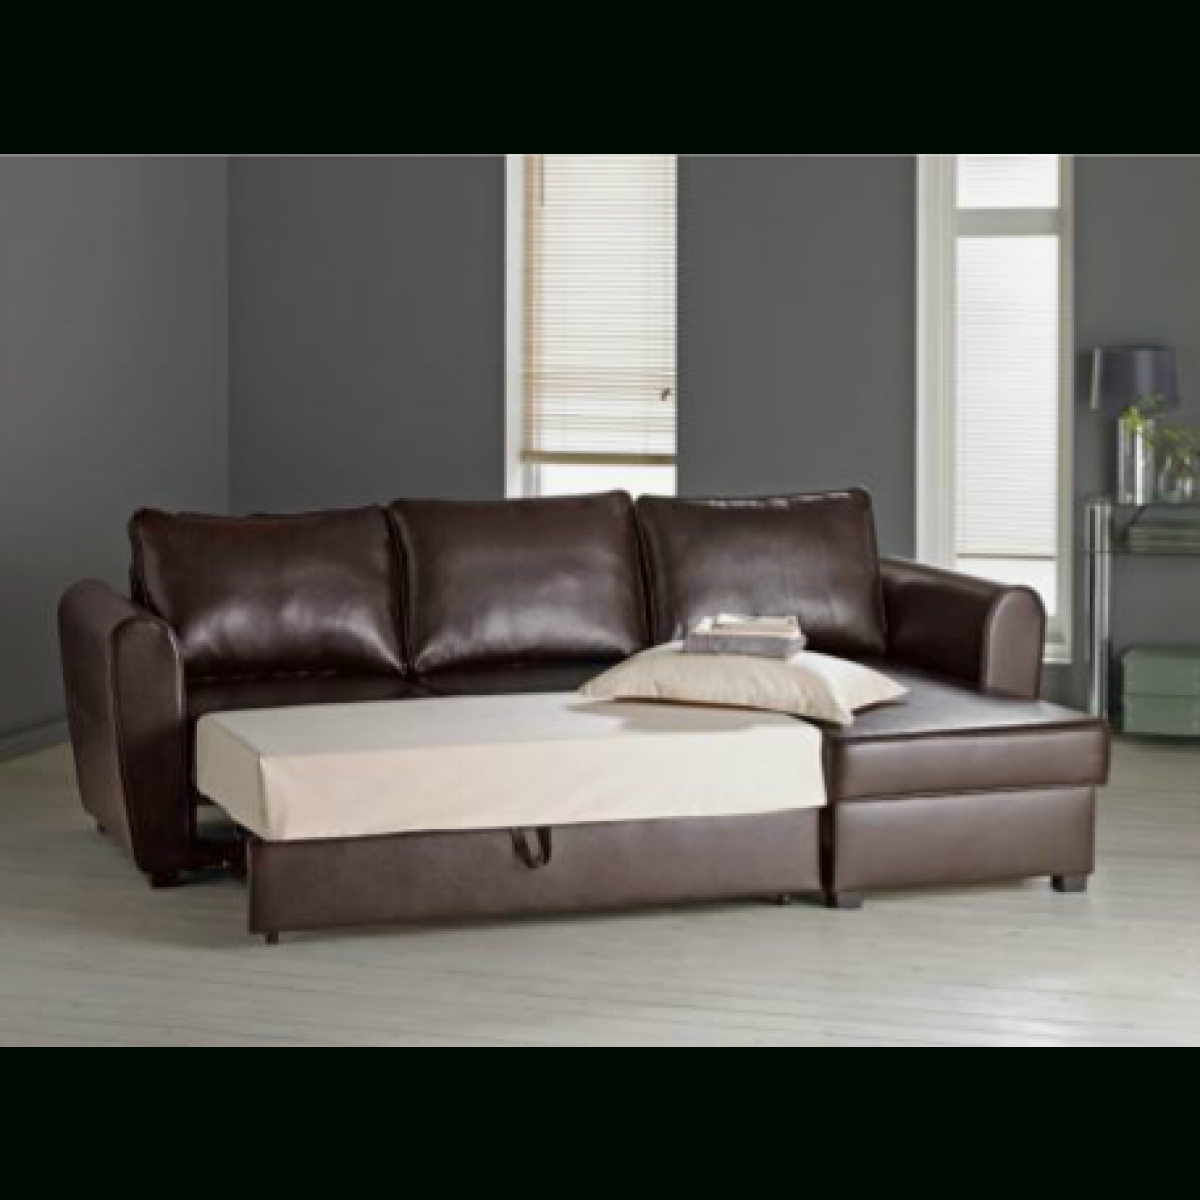 20 Inspirations Leather Sofa Beds With Storage Ideas